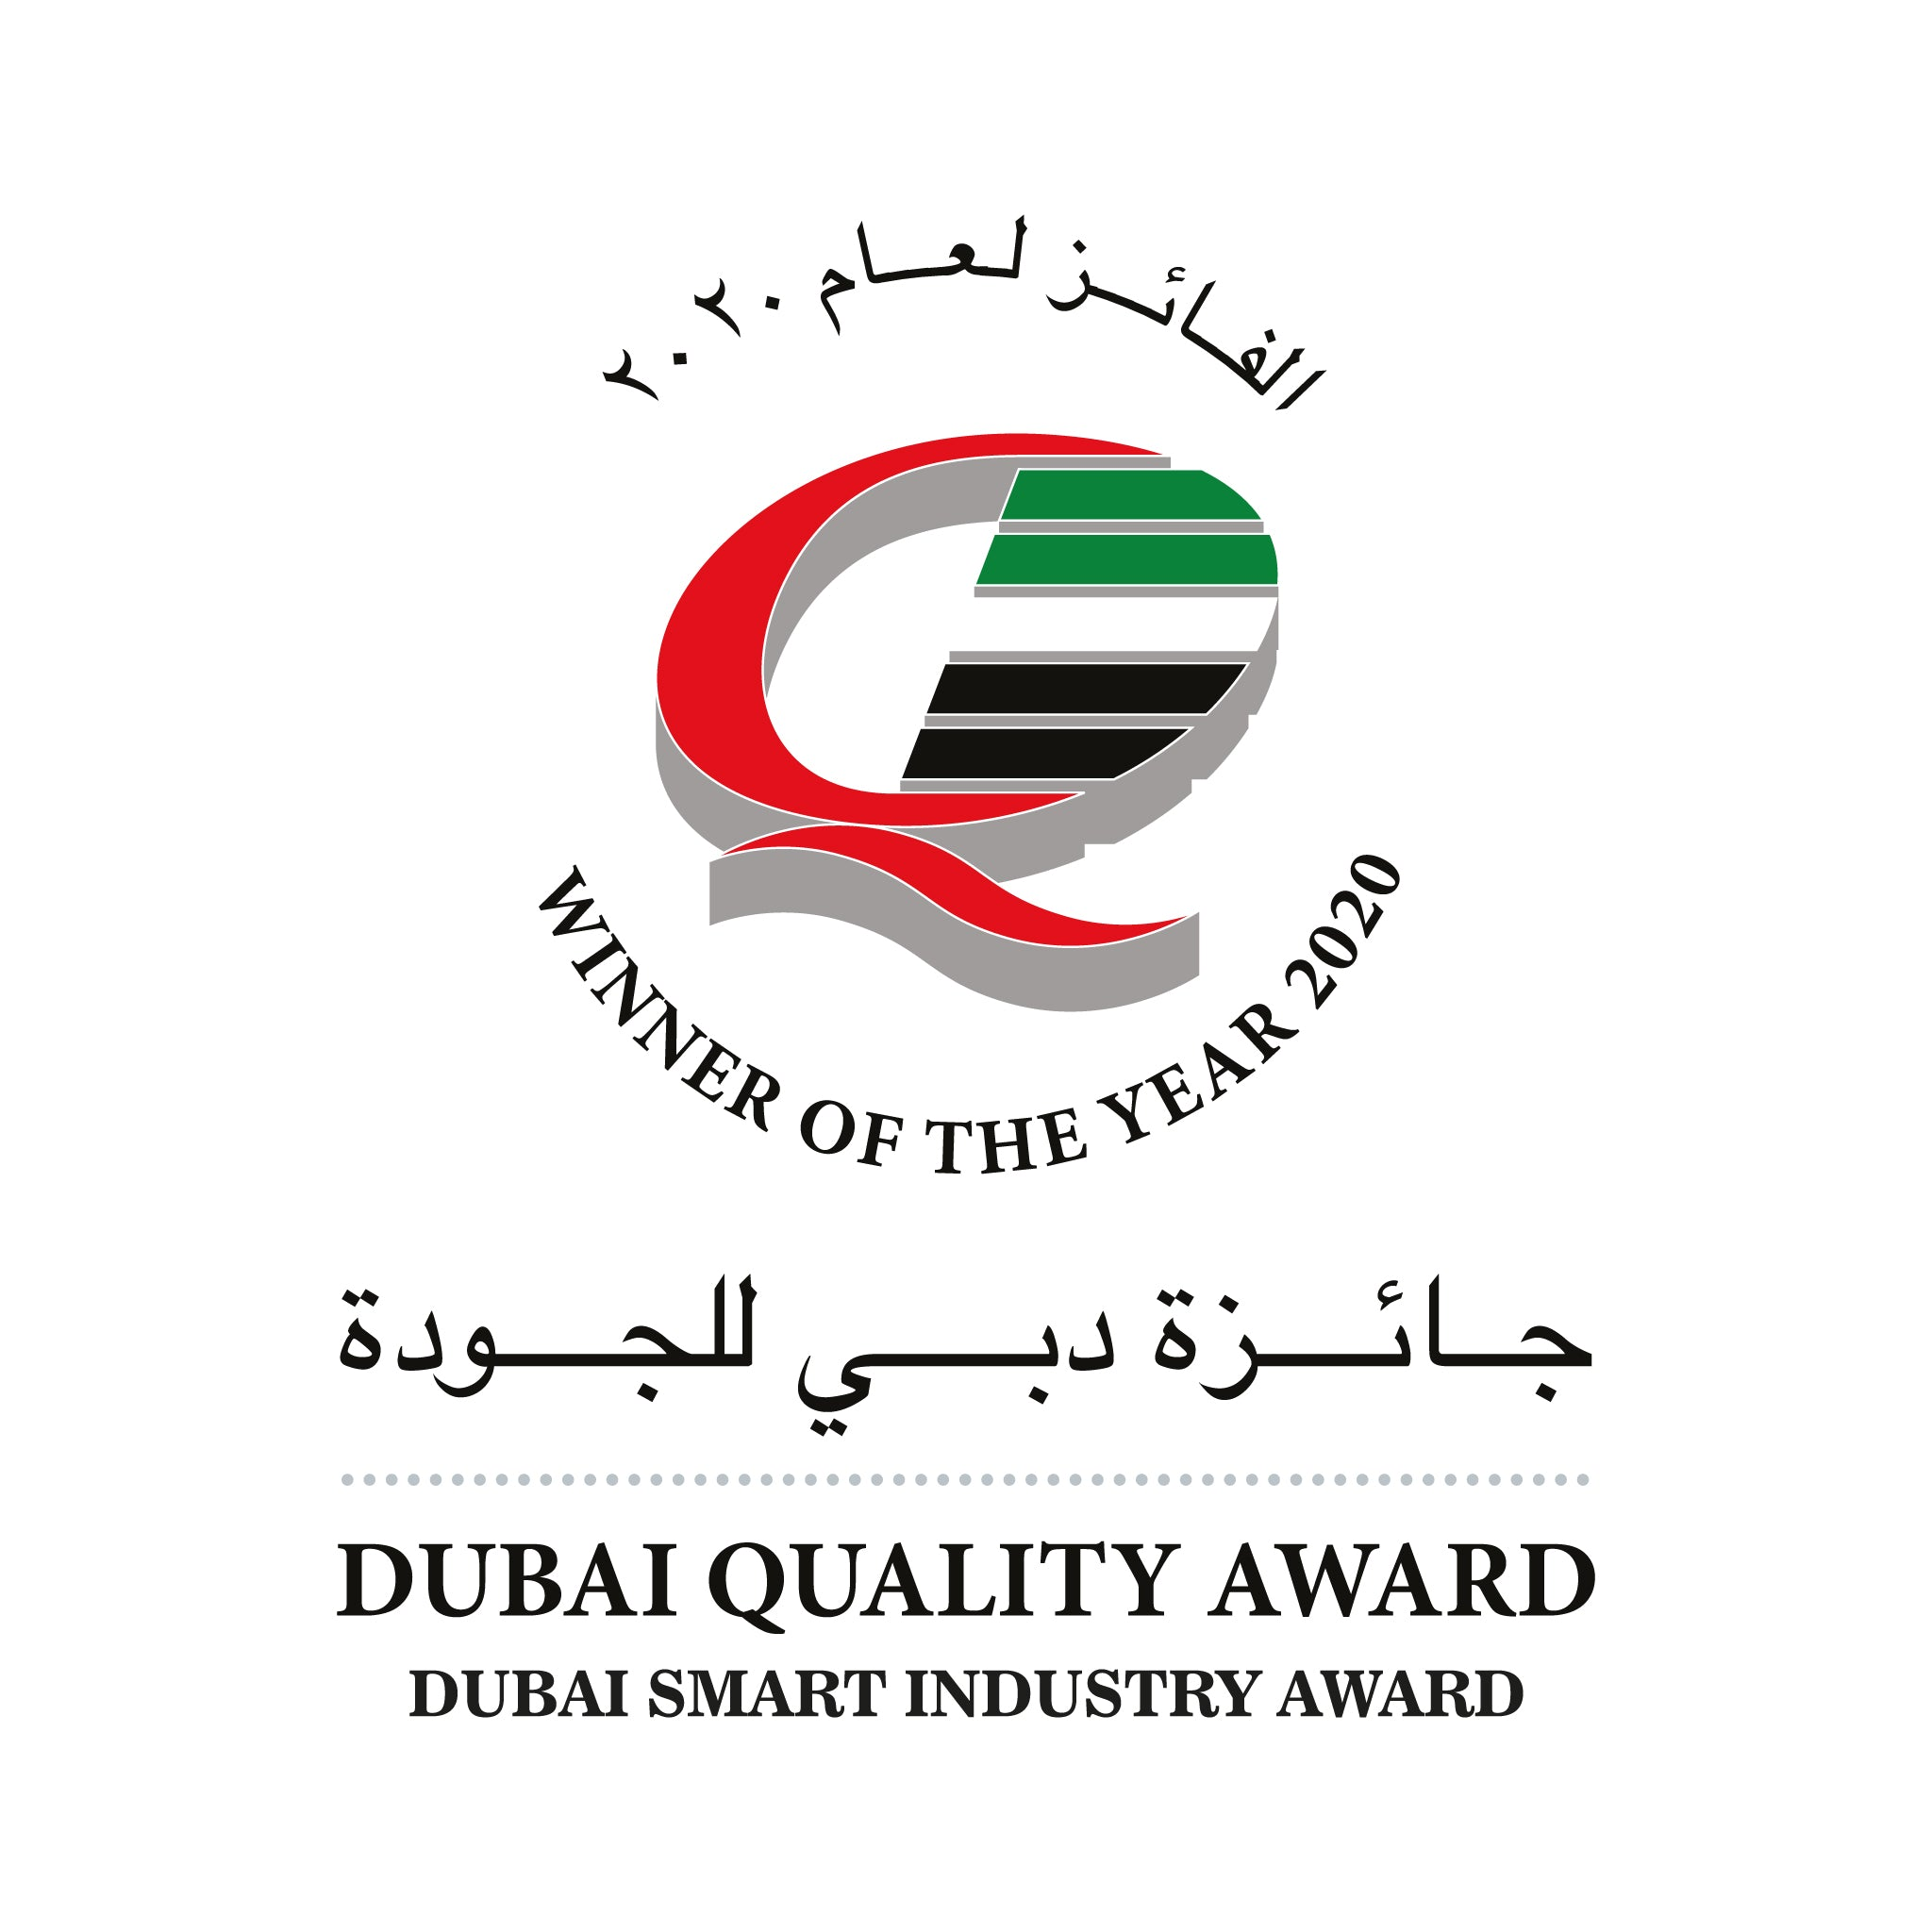 Hotpack Packaging wins the first ever Dubai Smart Industry Award